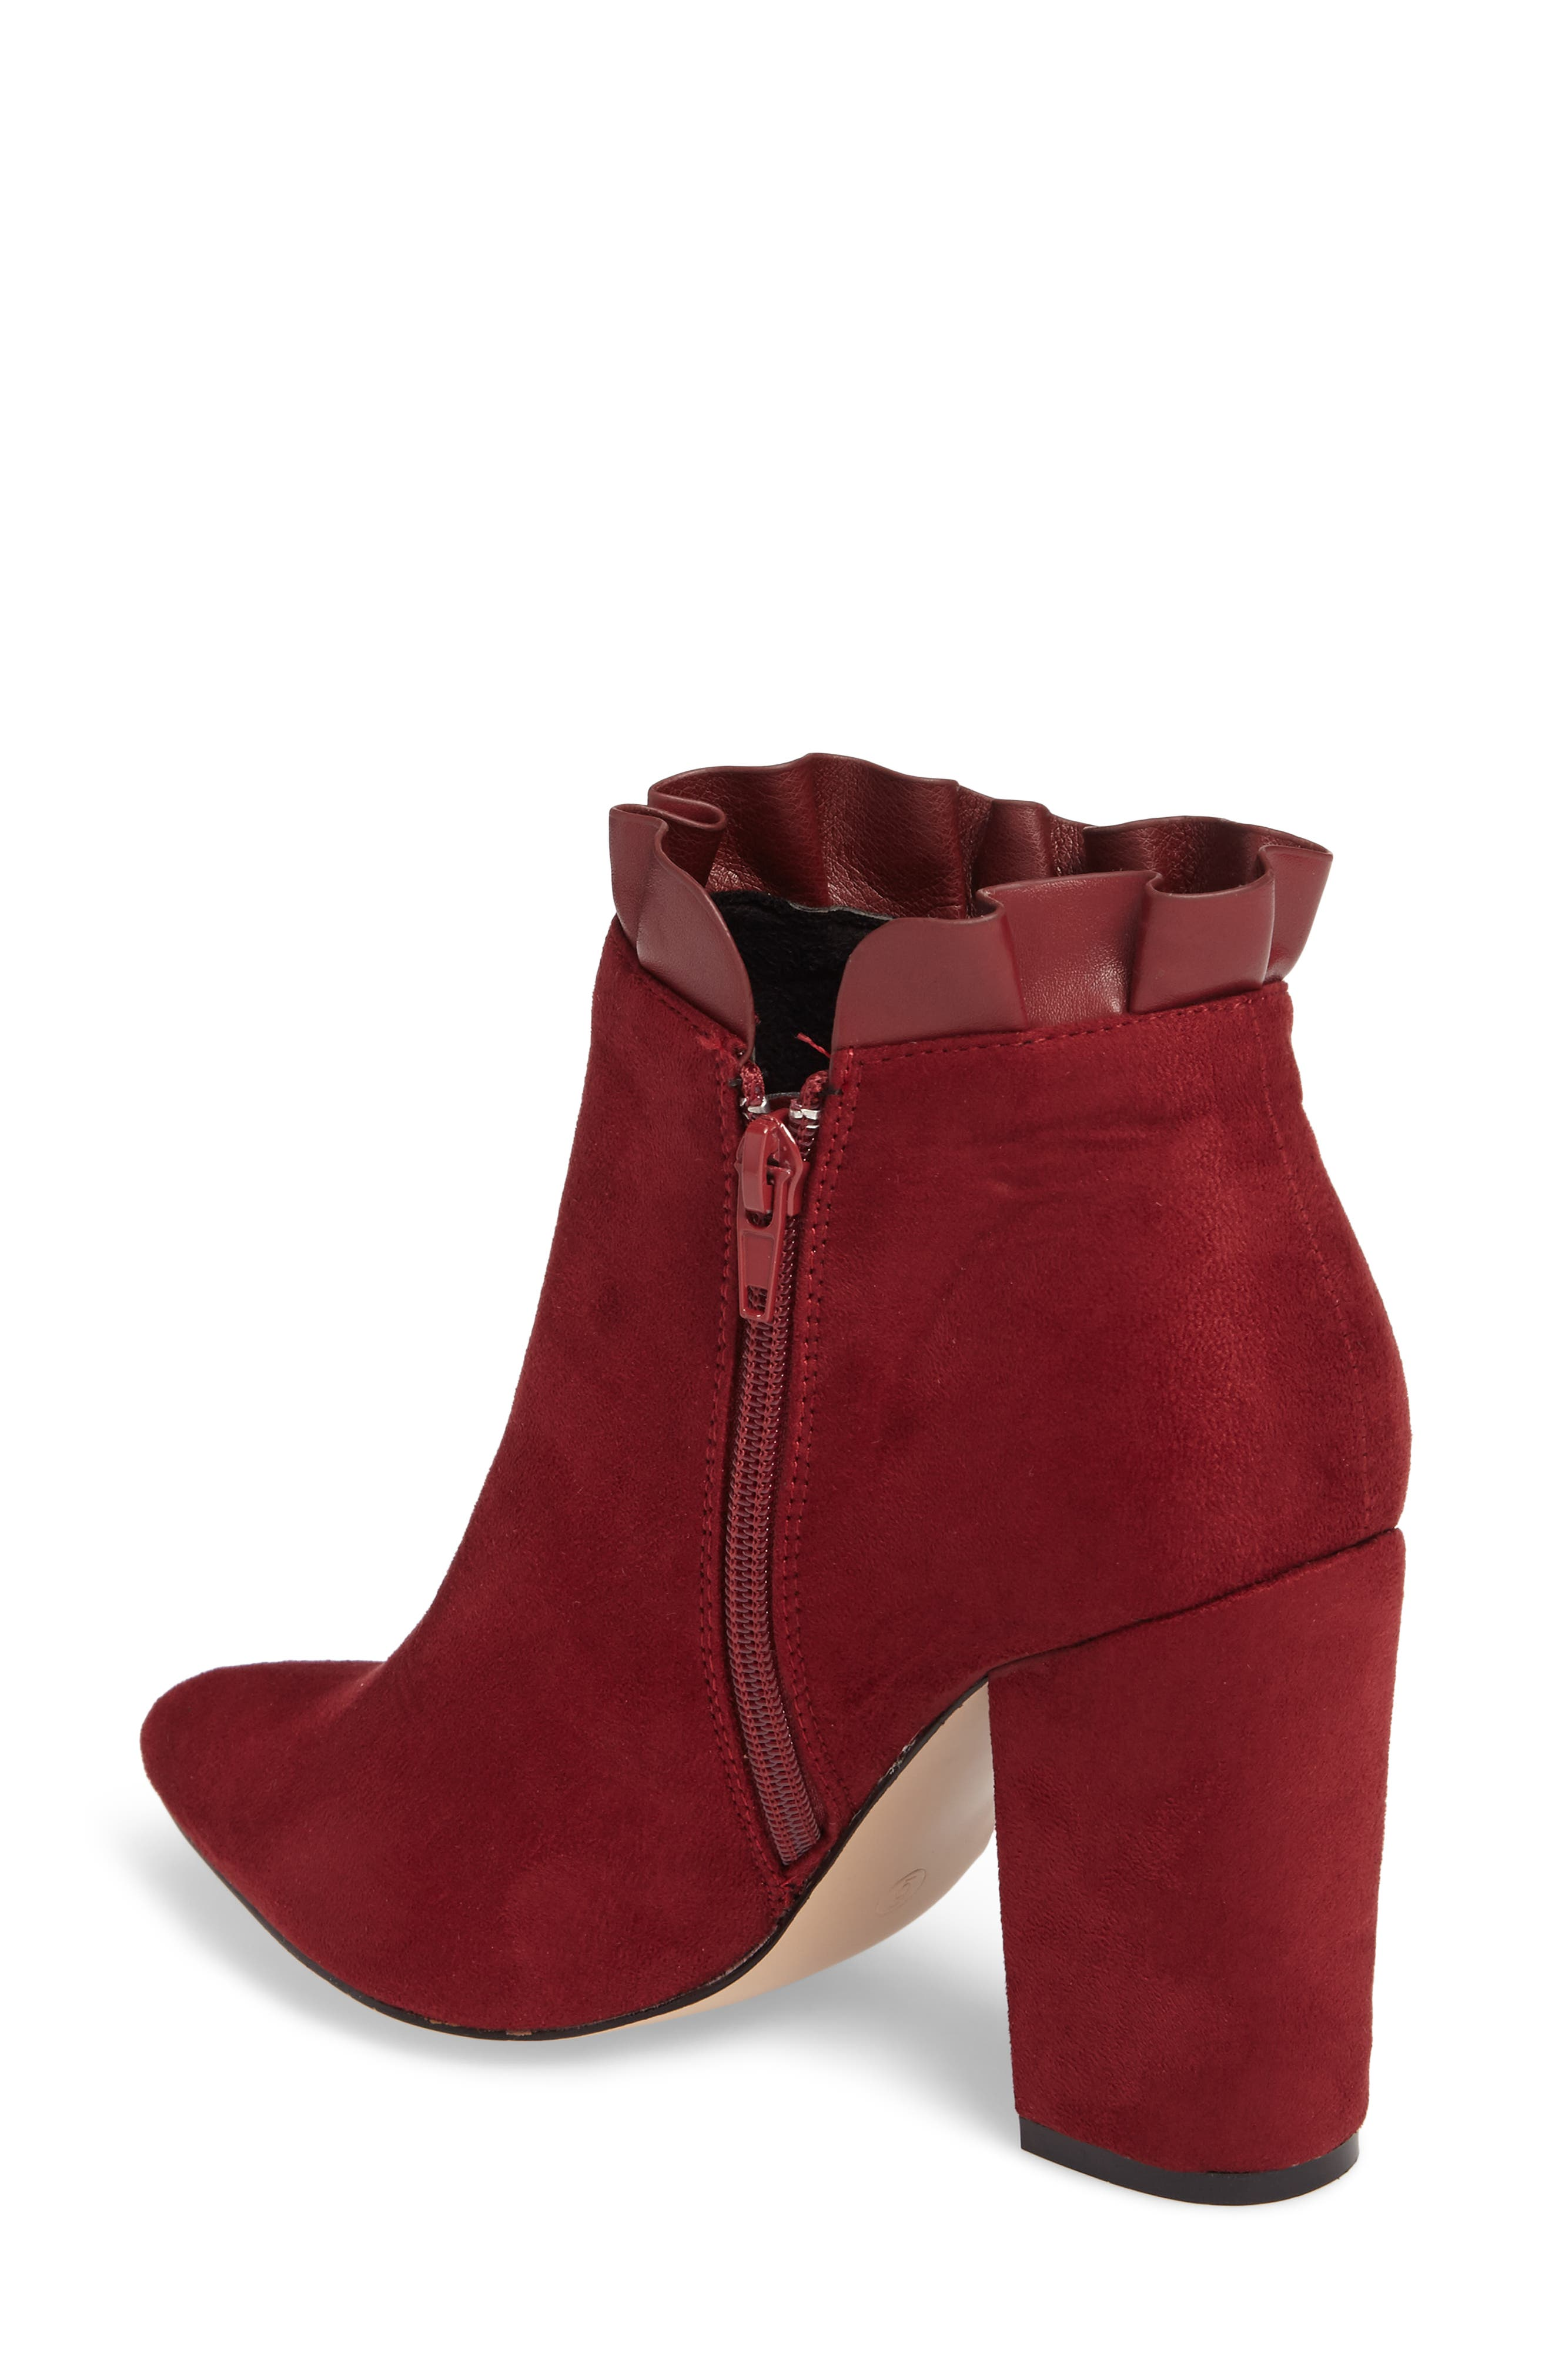 Katana Pointy Toe Bootie,                             Alternate thumbnail 6, color,